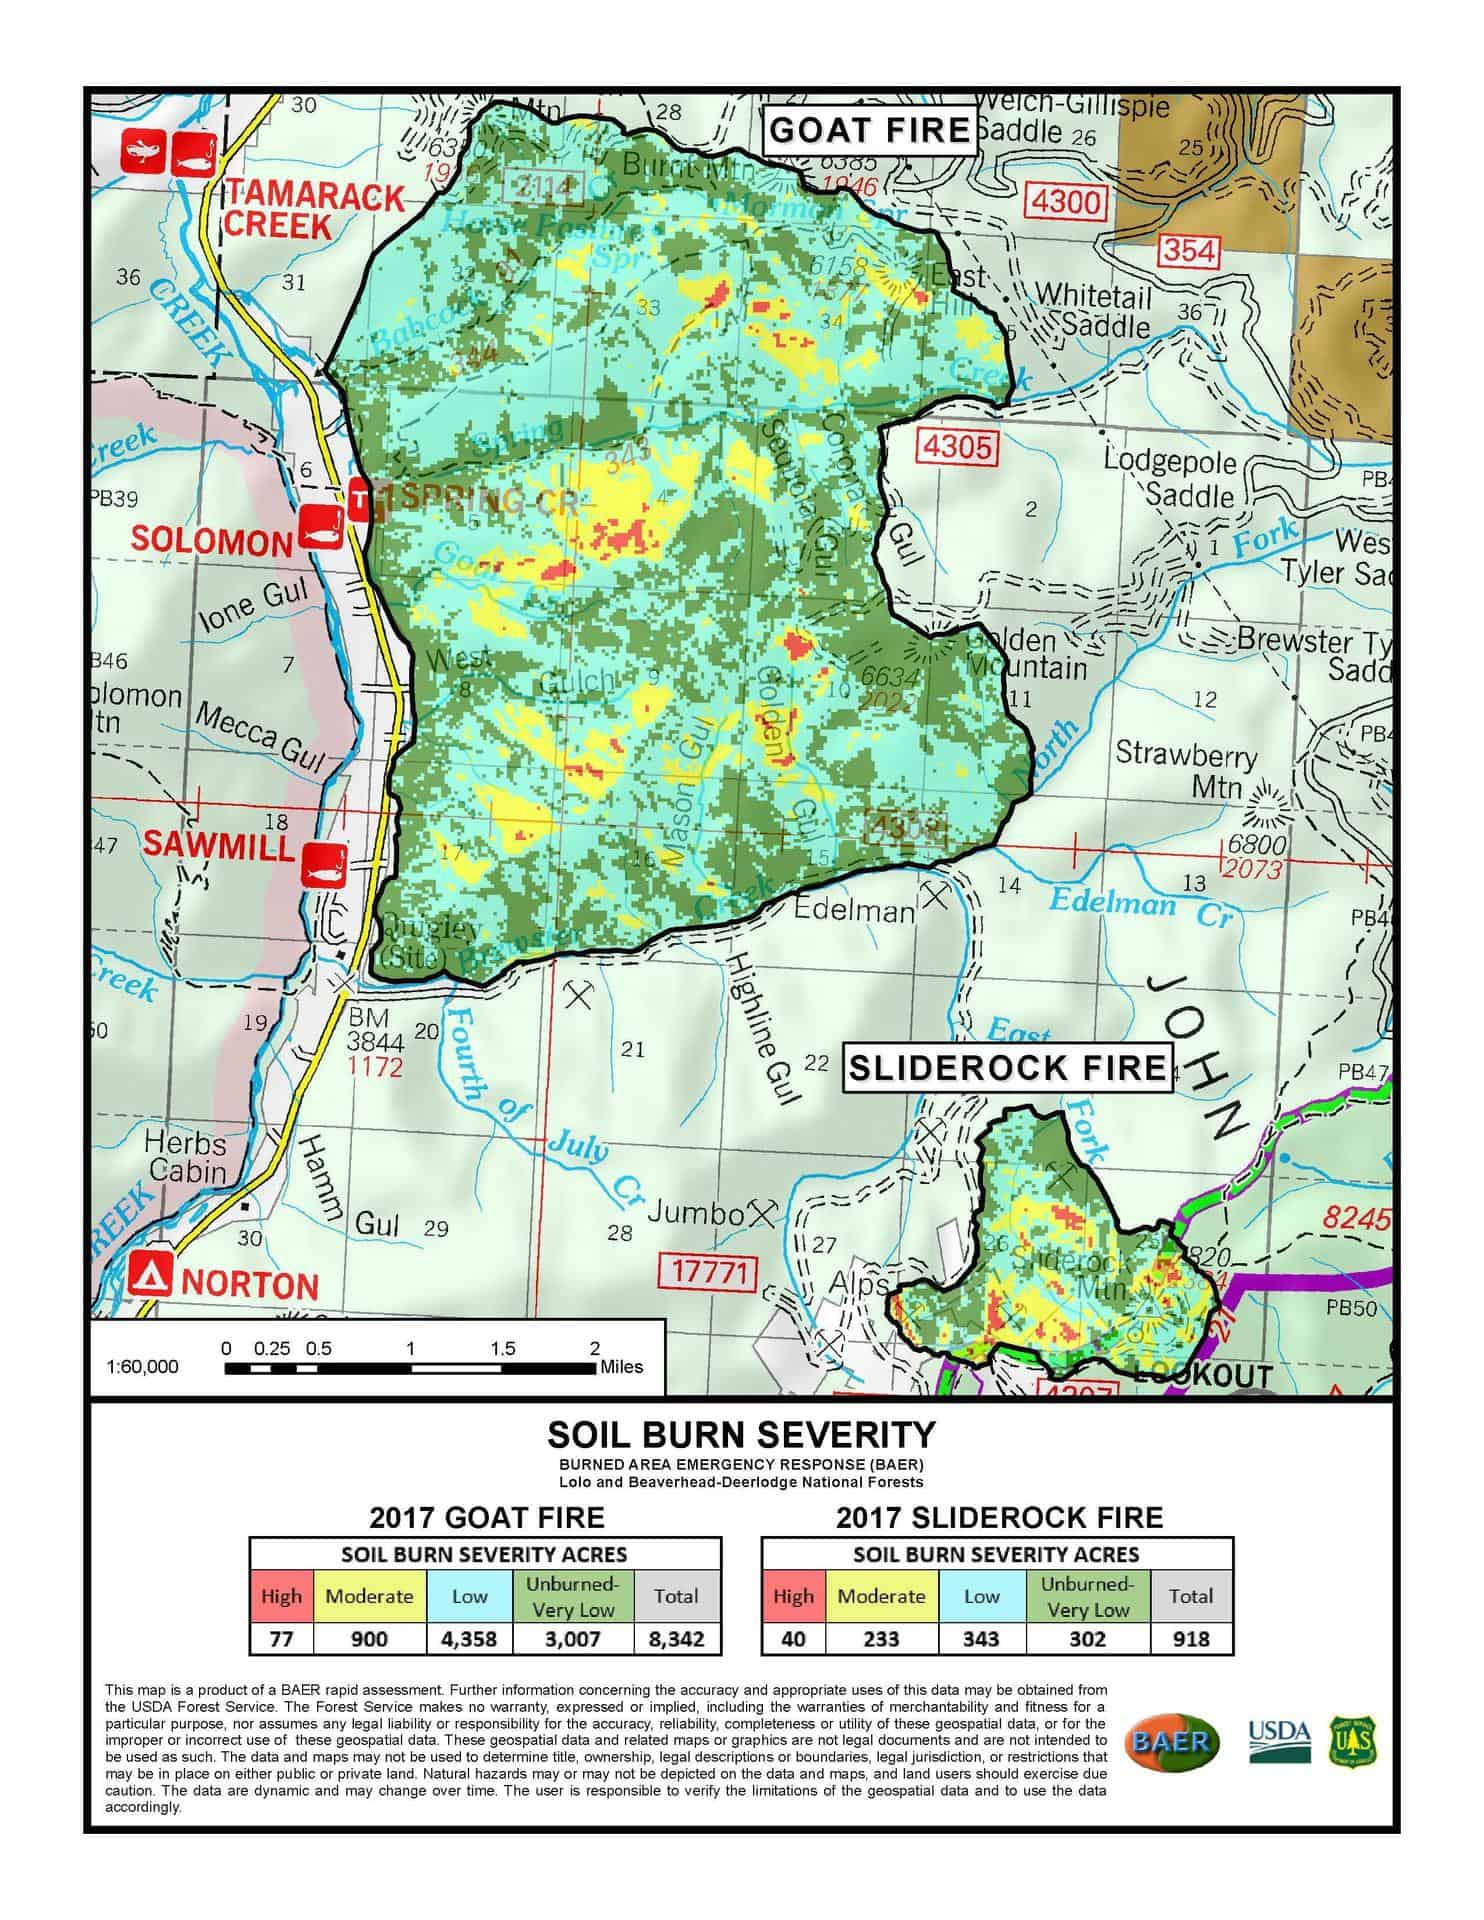 Forest Service Releases Soil Burn Severity Maps For Some Montana - Montana political map